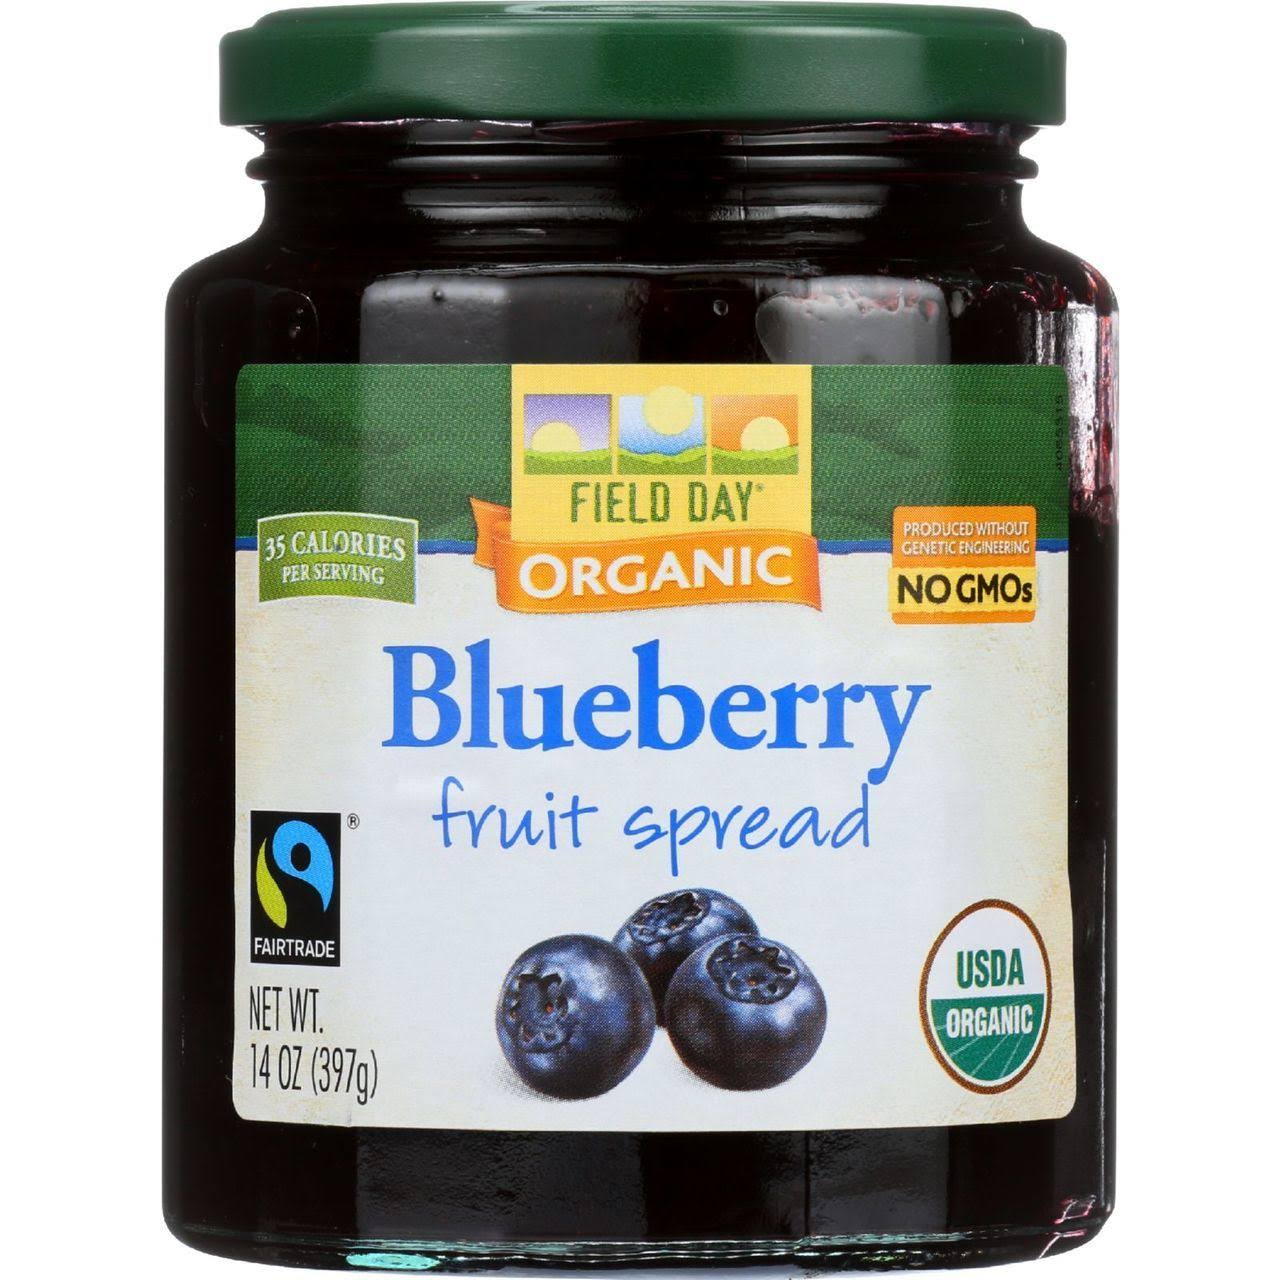 Field Day Organic Fruit Spread - Blueberry, 397g